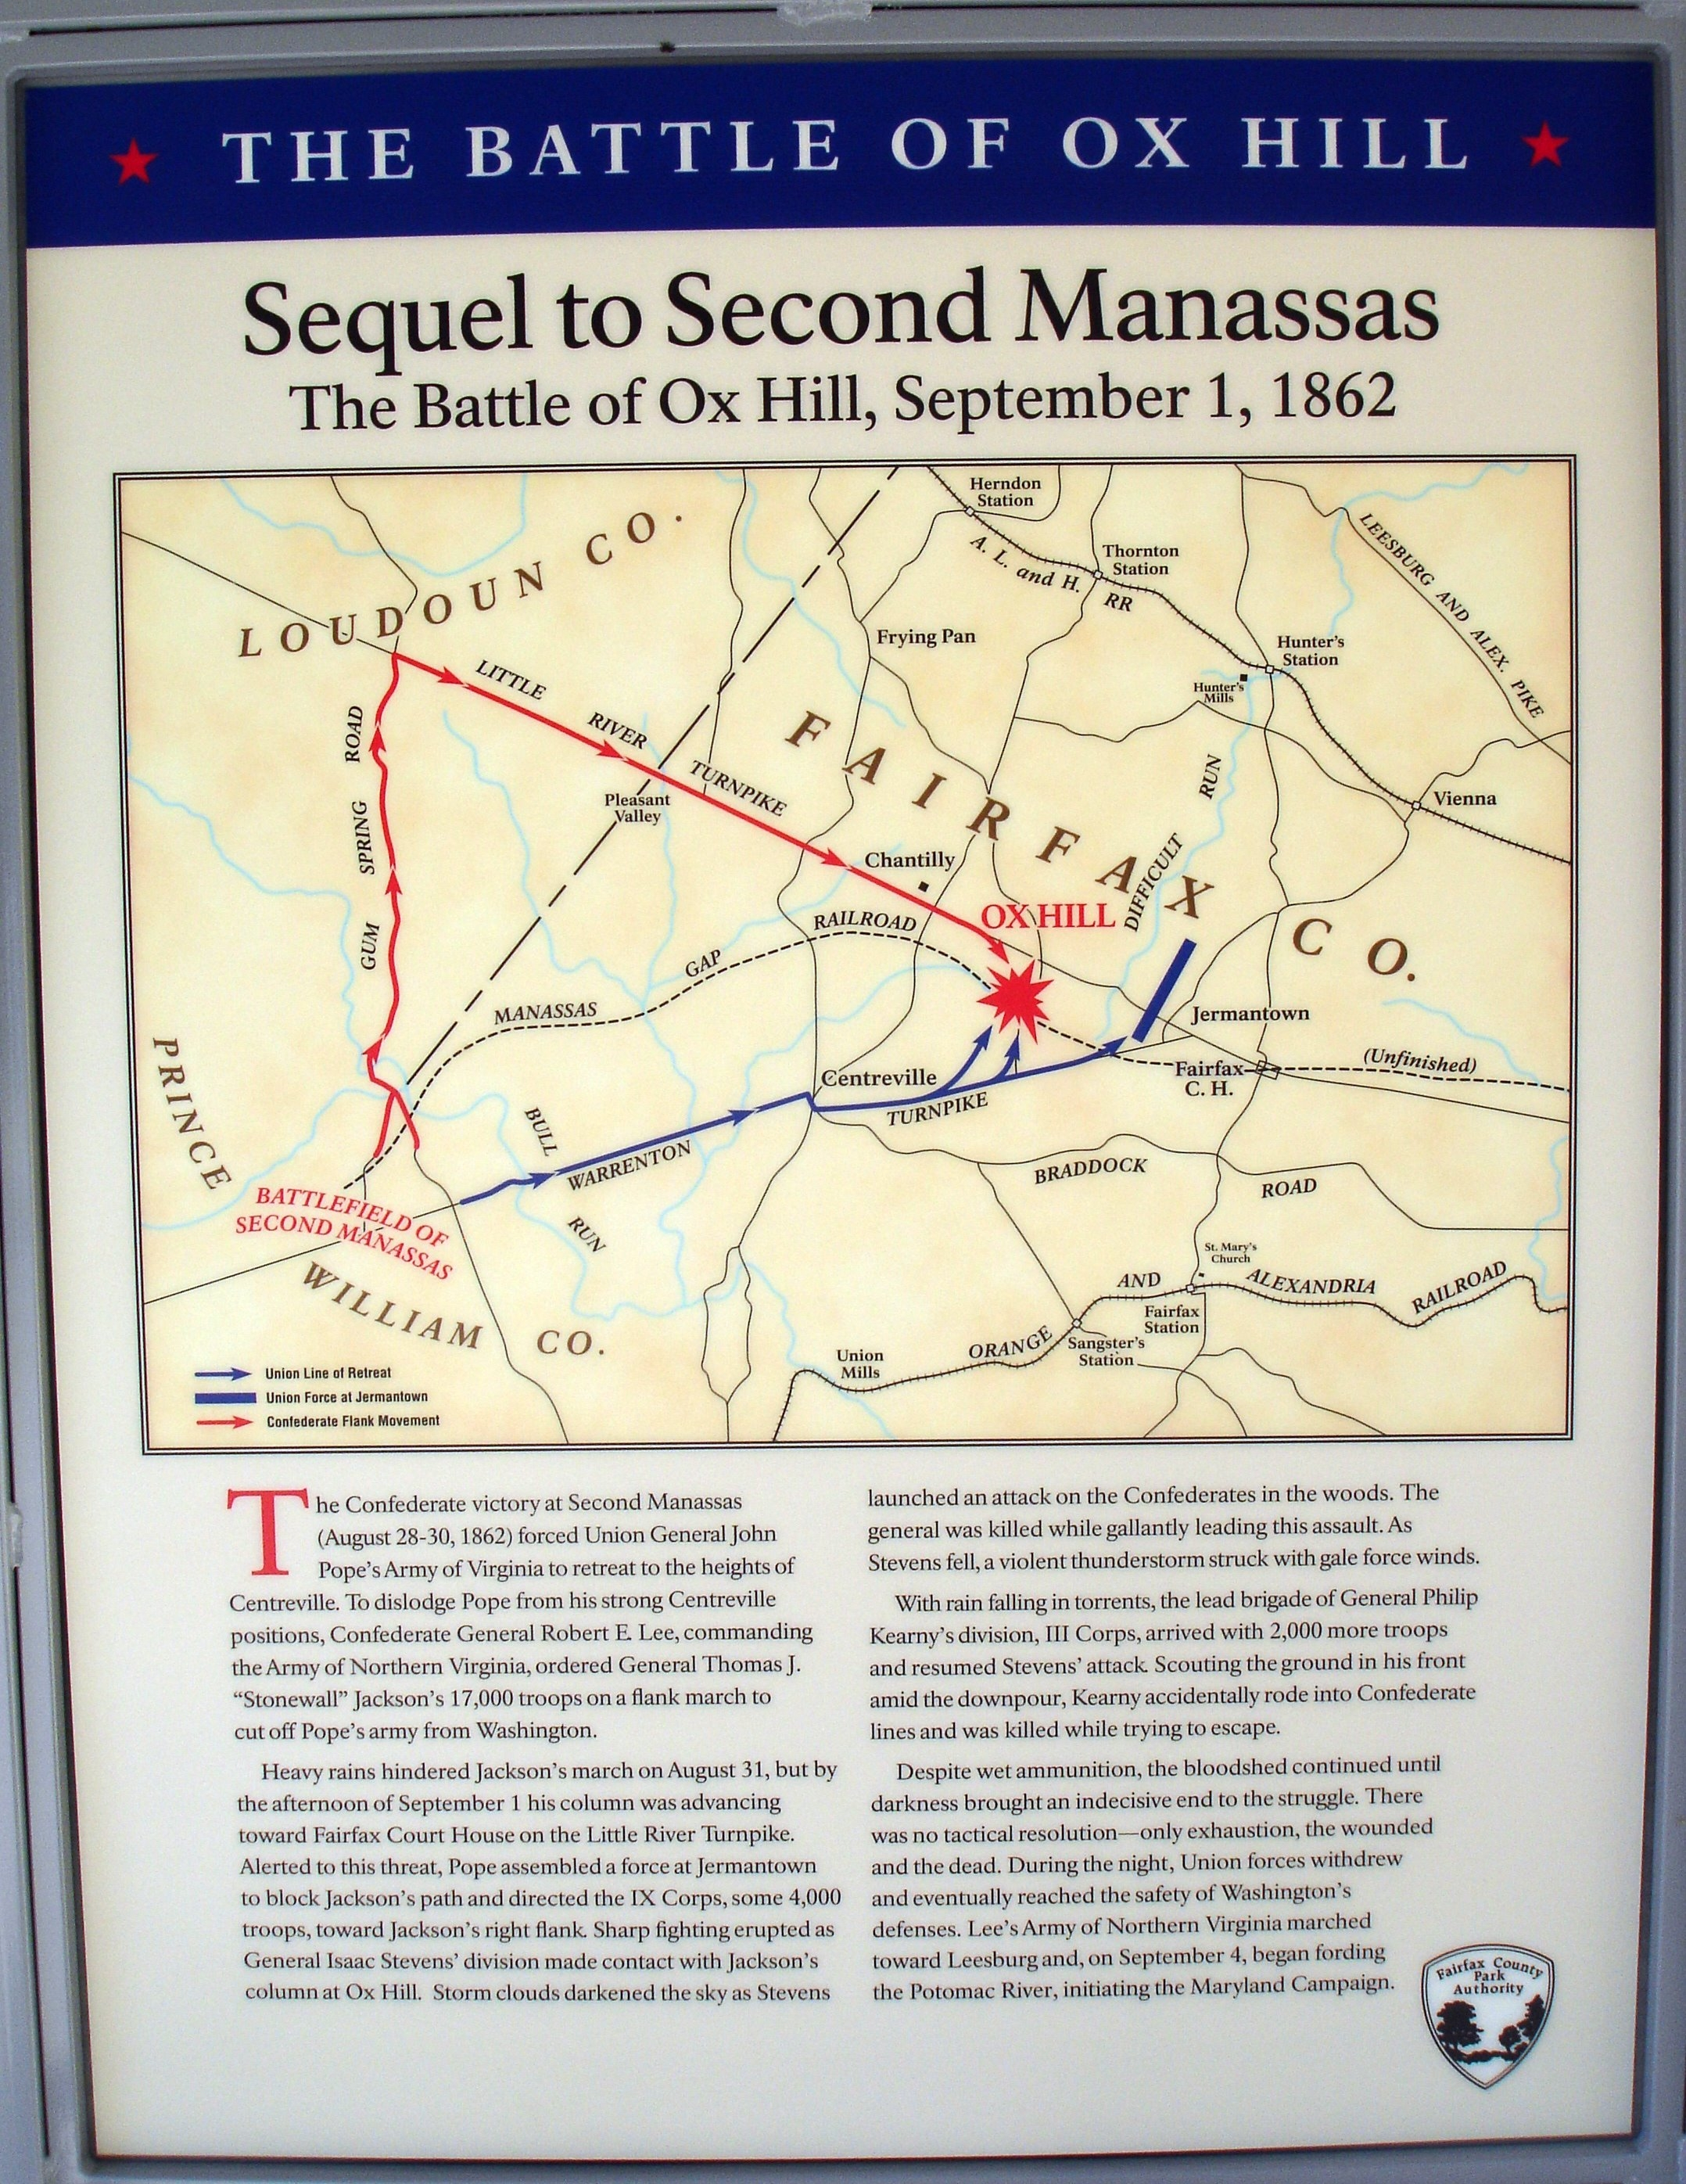 Sequel to Second Manassas Panel